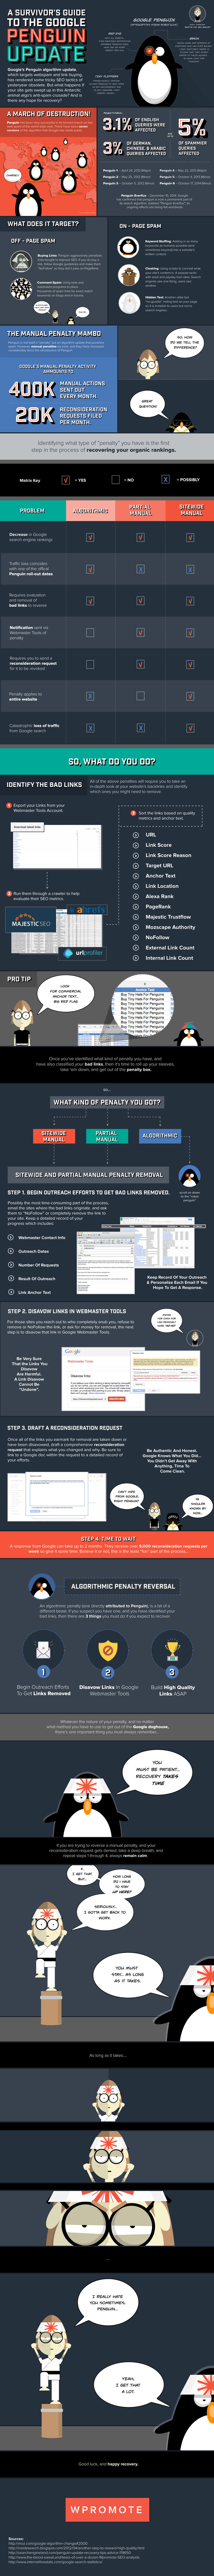 A Survivor's Guide To The Google Penguin Update [Infographic]